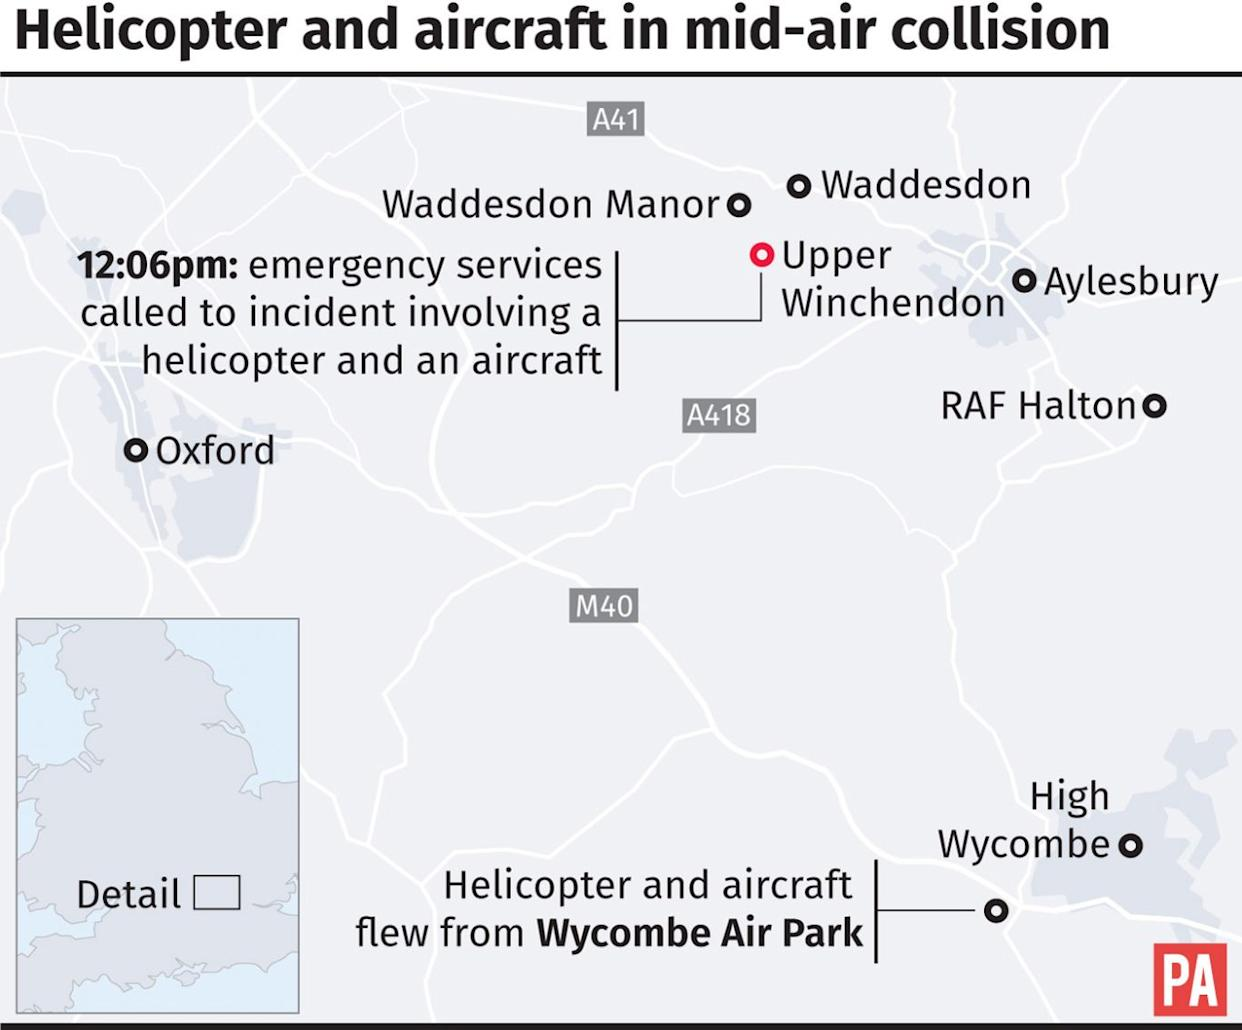 Key locations in the mid-air collision between a helicopter and an aircraft